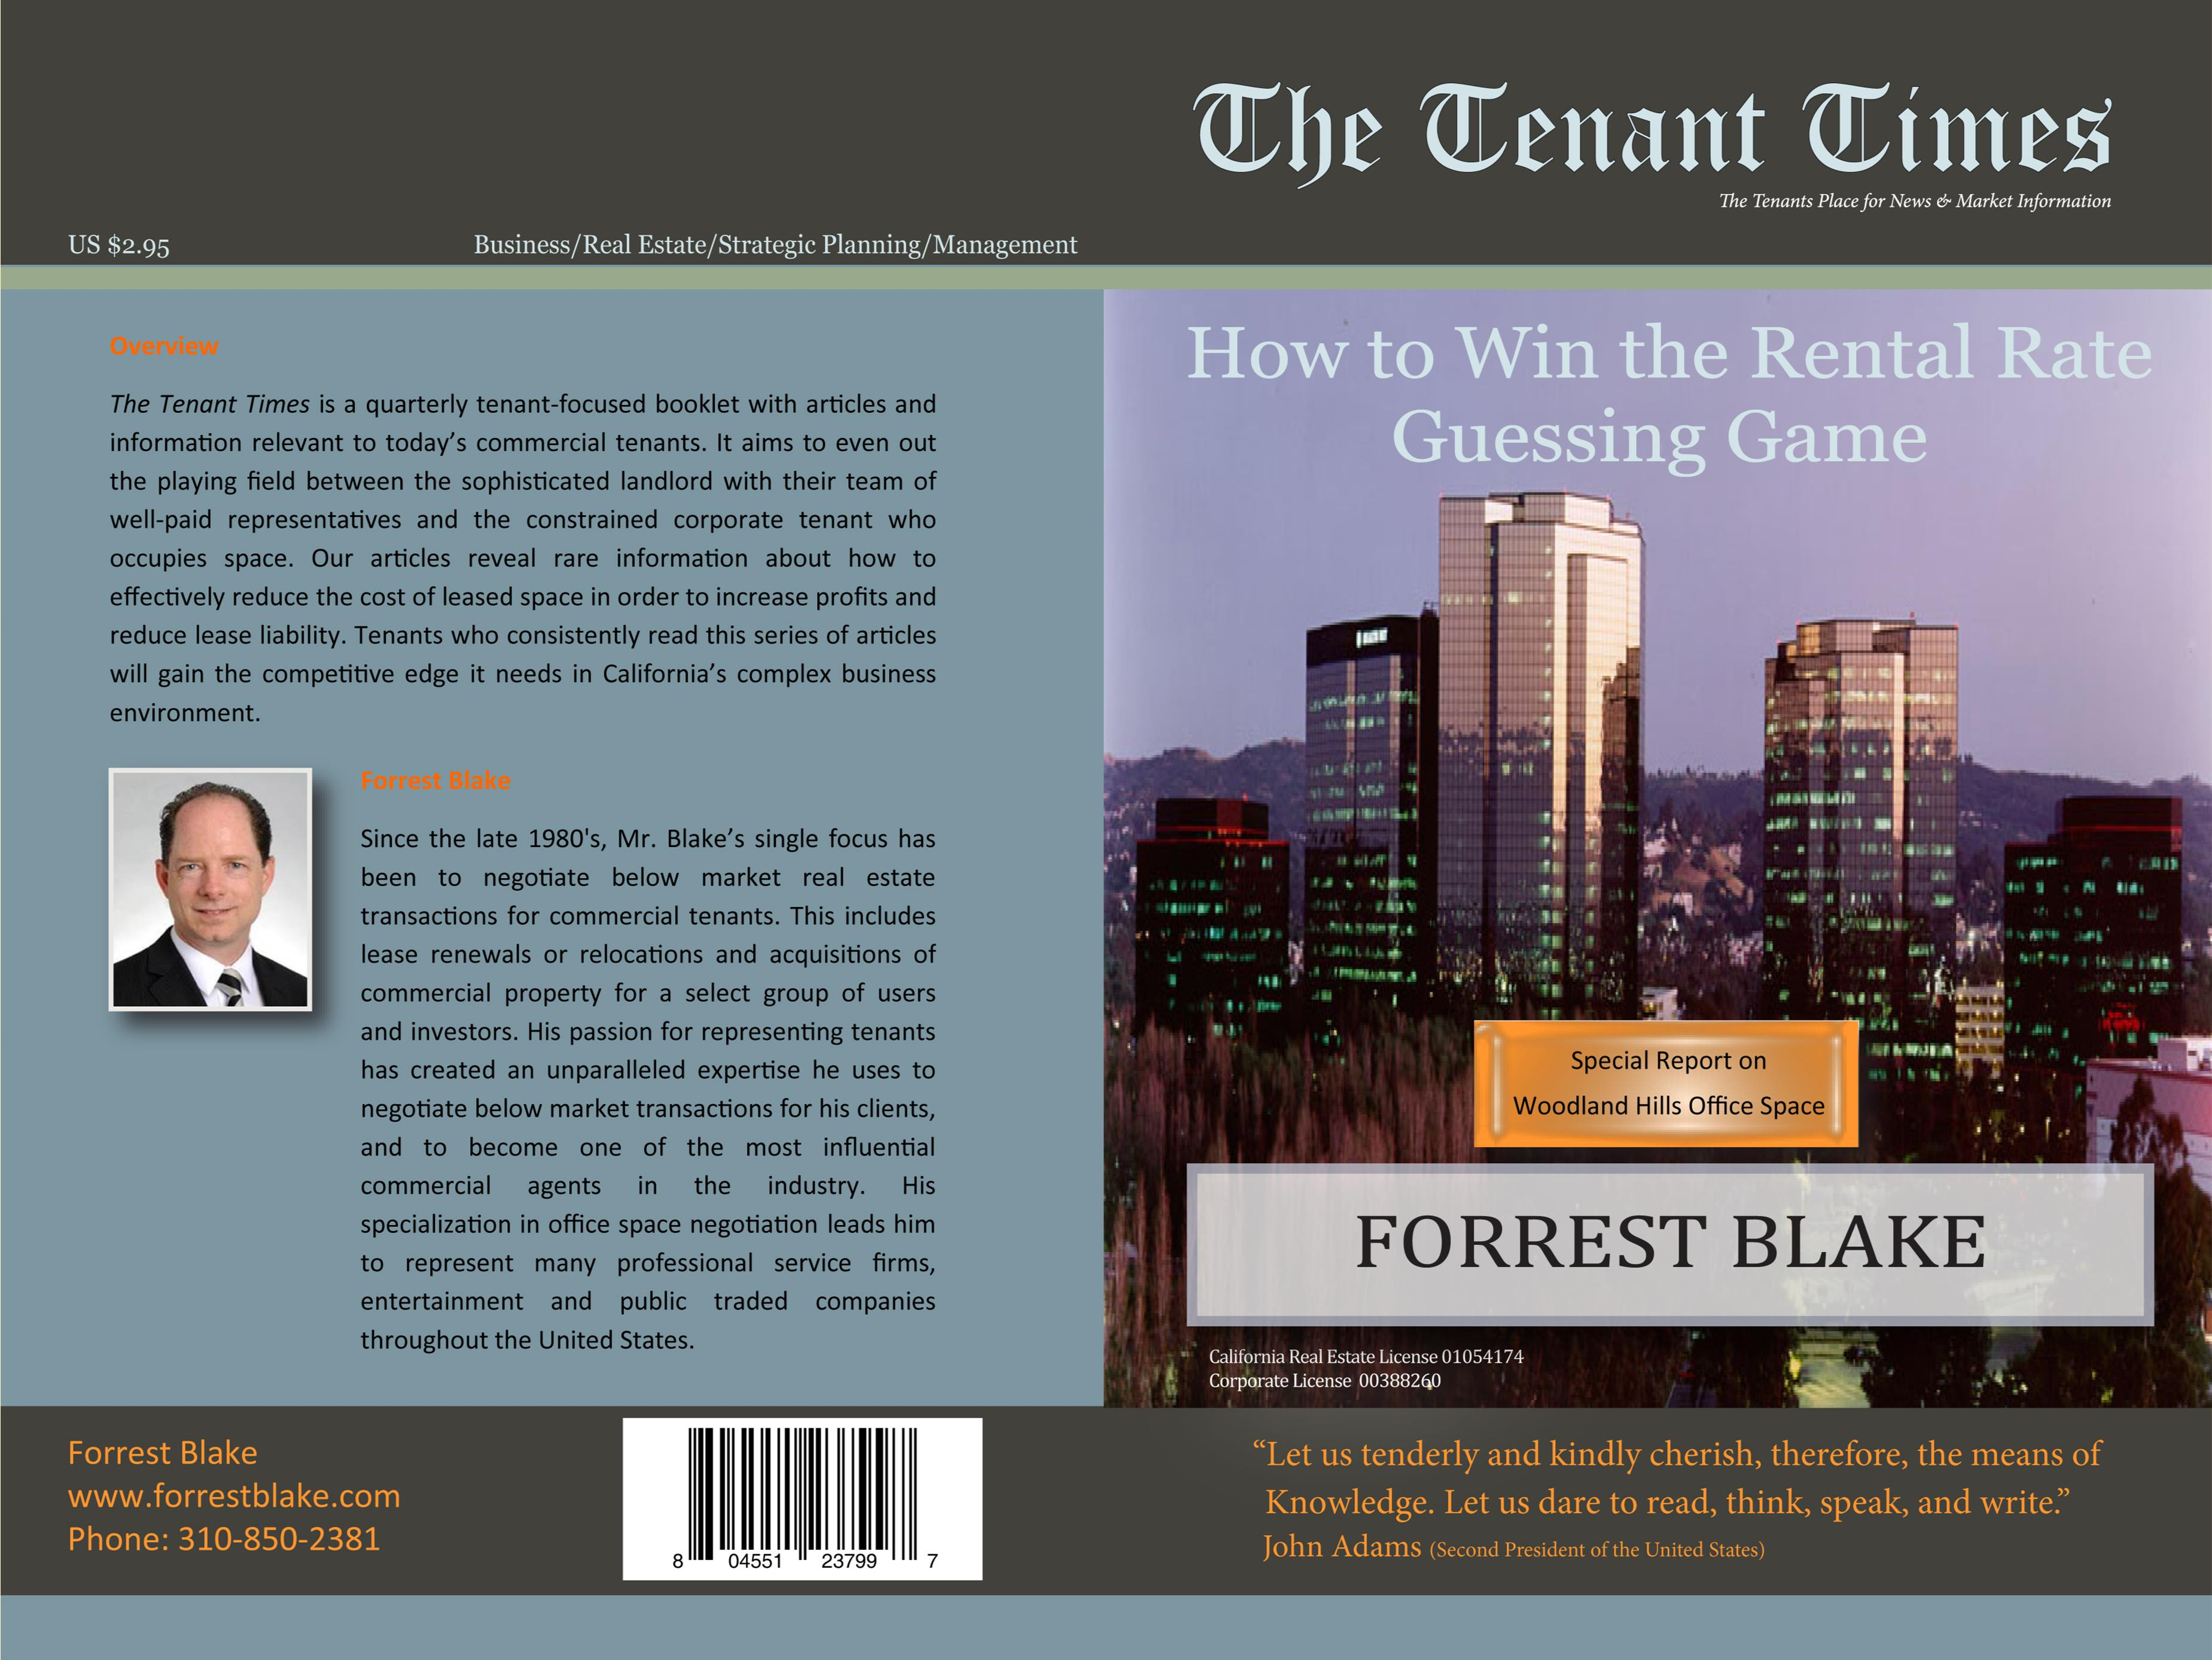 2Q13 Tenant Times Woodland Hills cover image